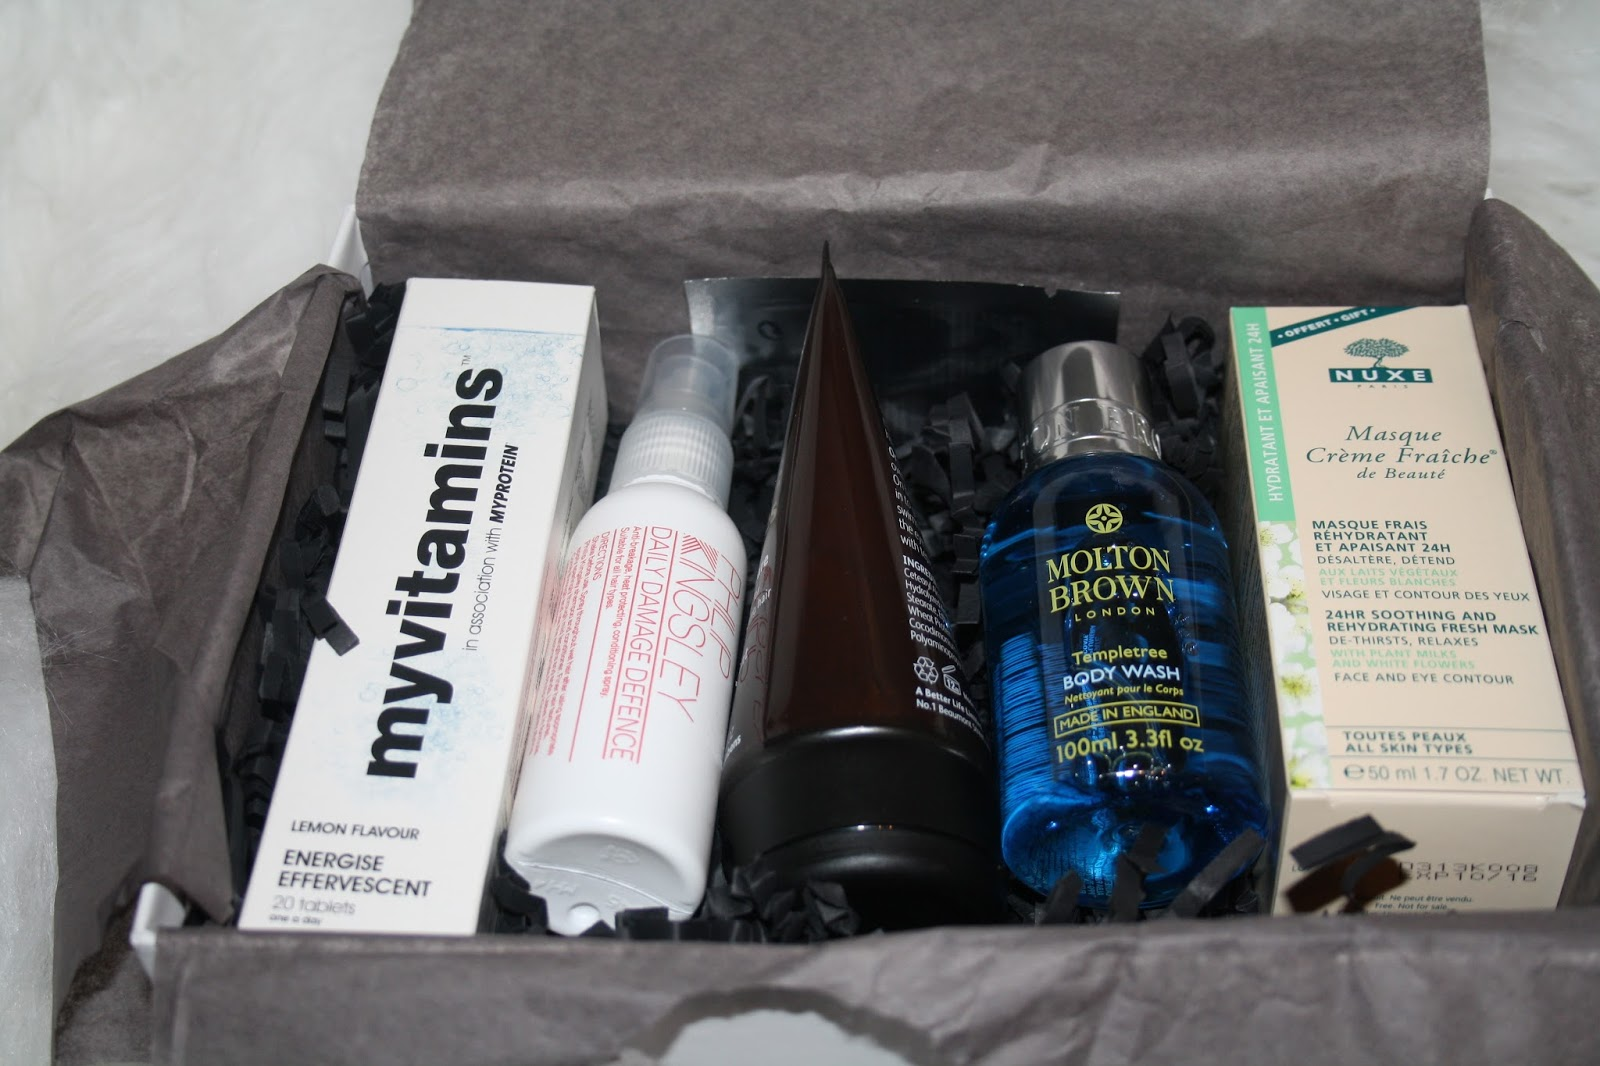 Look Fantastic Beauty Box January Contents 2015